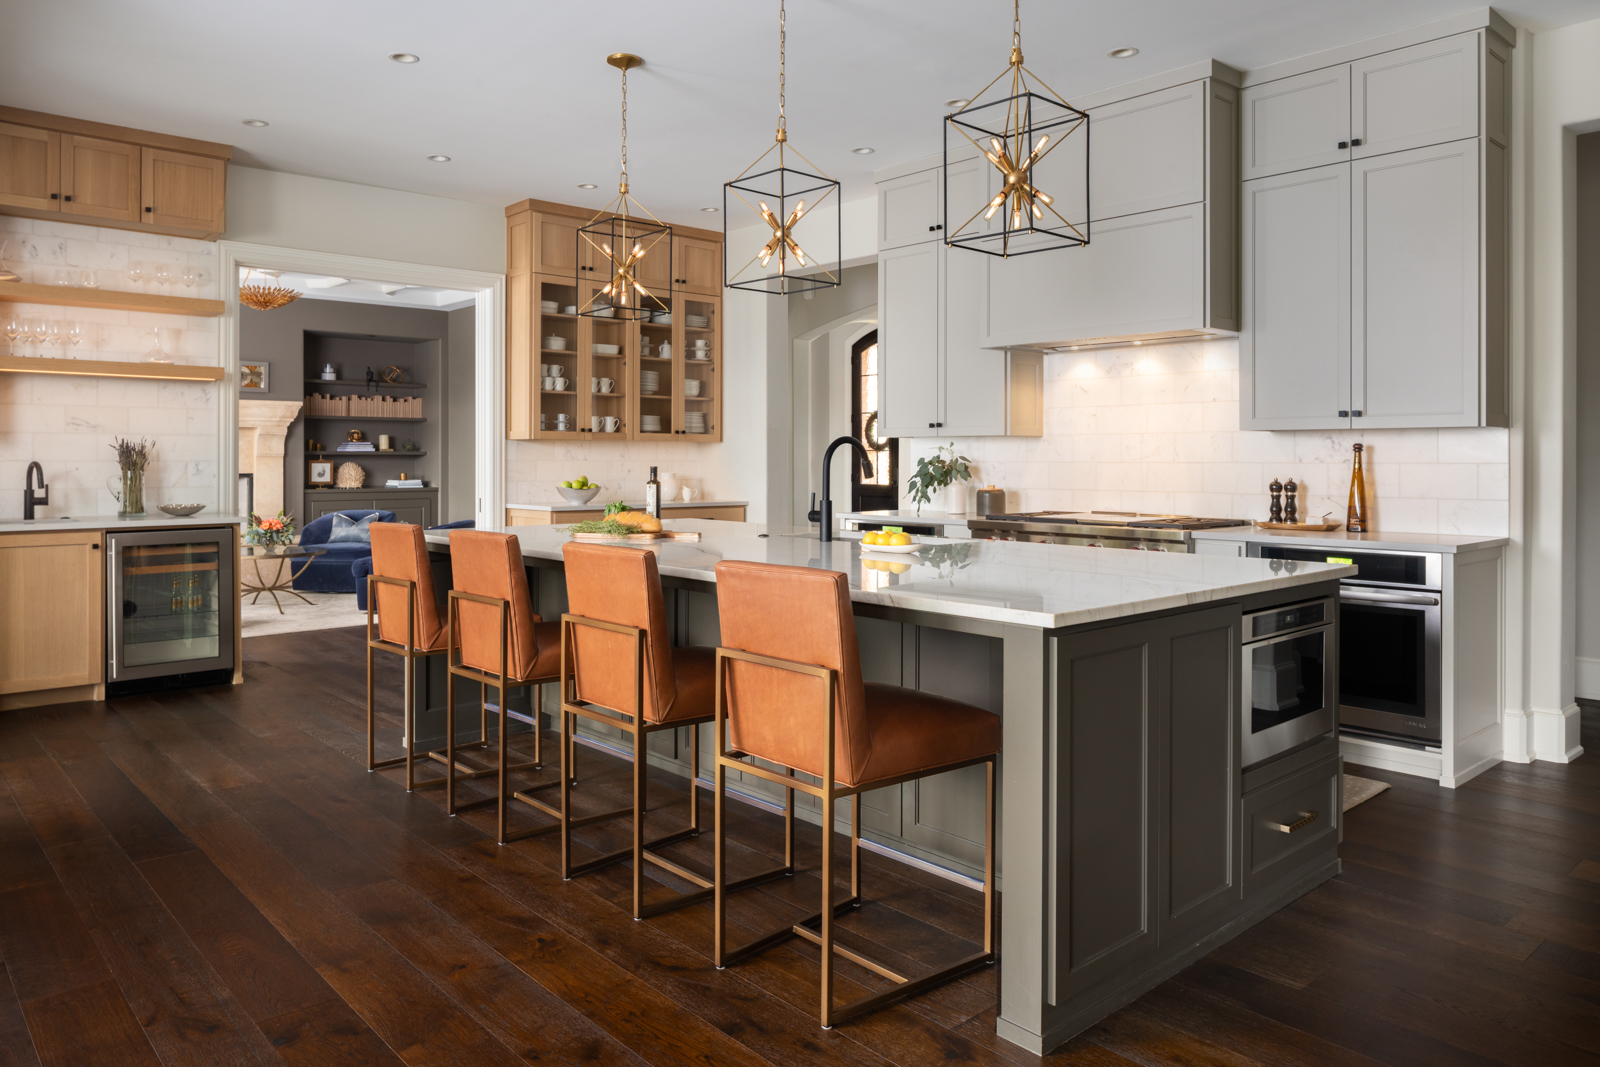 Robert Gomez - Austin Texas Editorial, Food & Beverage, Interiors Photographer | Interiors | 17